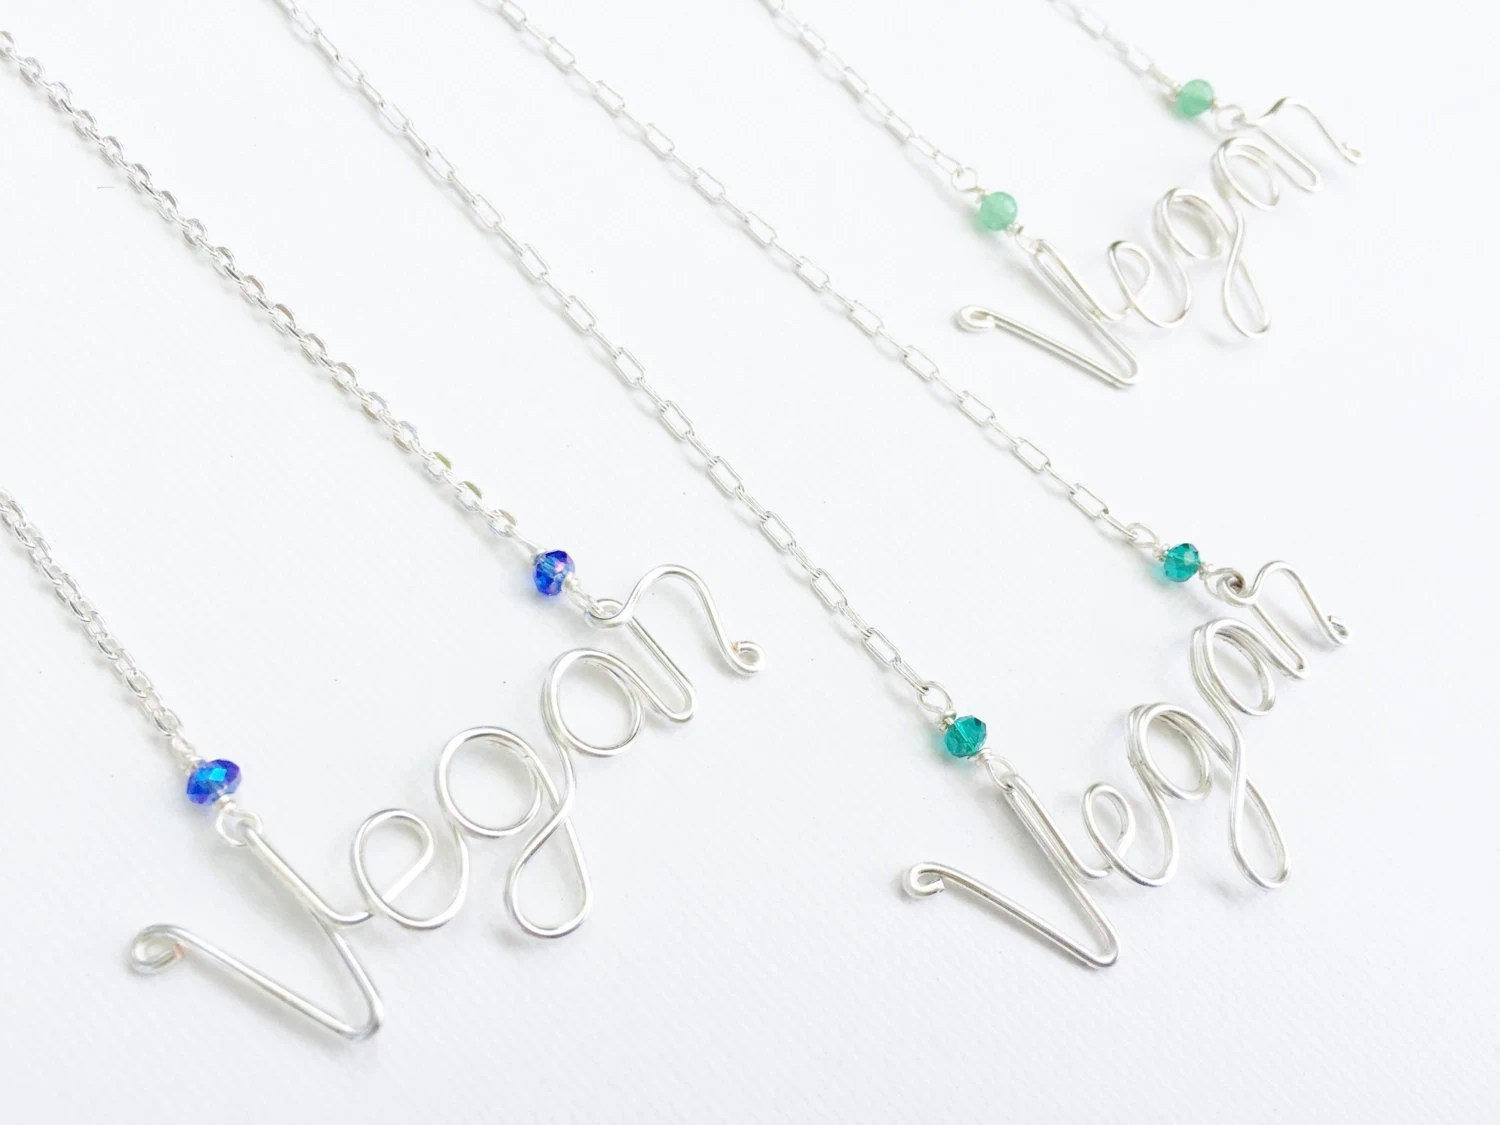 Vegan Handcrafted Wire Necklace By Urbangoddesses On Etsy